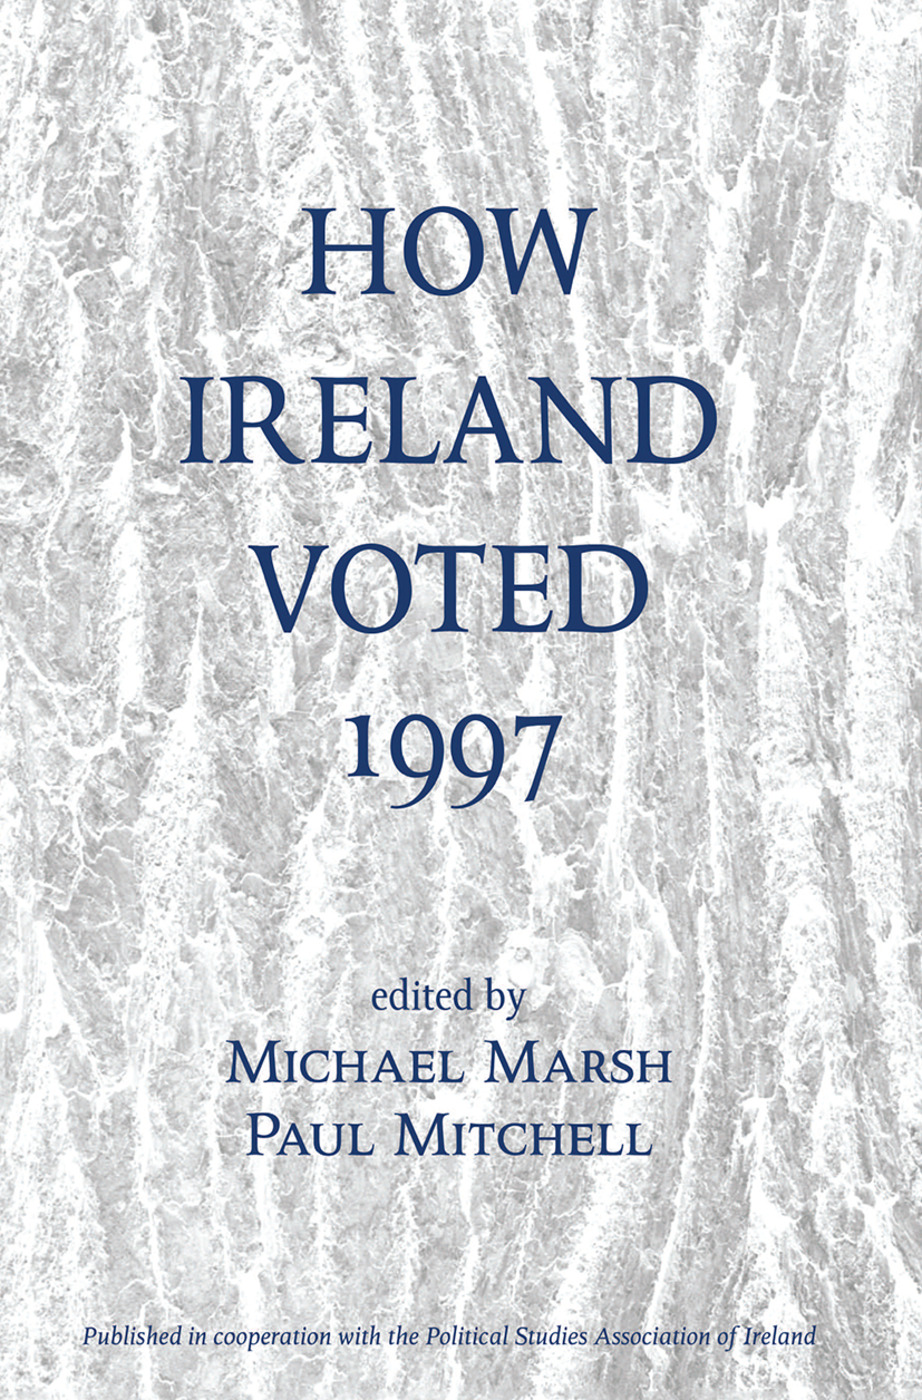 How Ireland Voted 1997 book cover